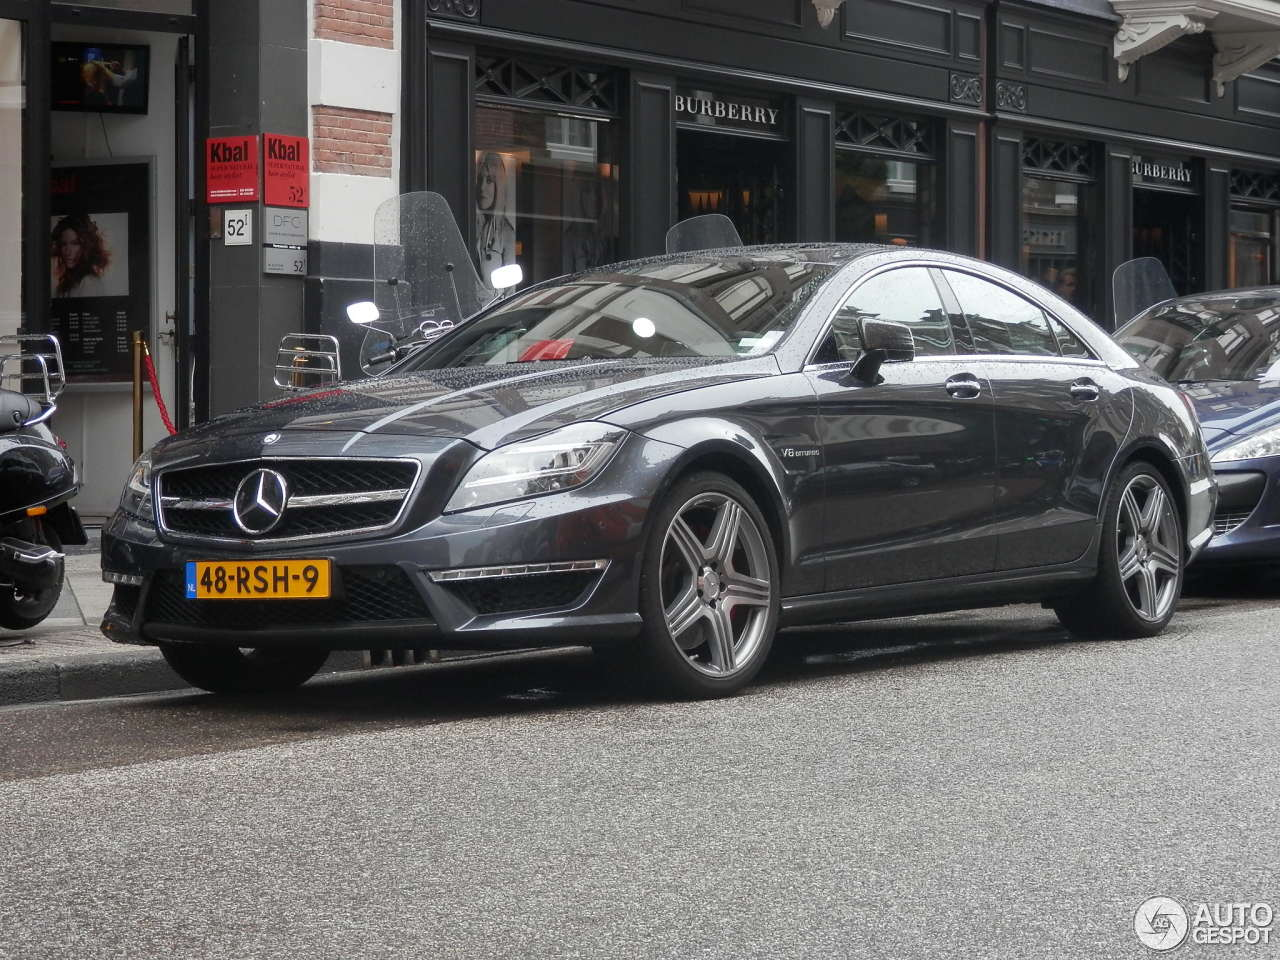 Mercedes benz cls 63 amg c218 17 september 2013 autogespot for 2013 mercedes benz cls 63 amg